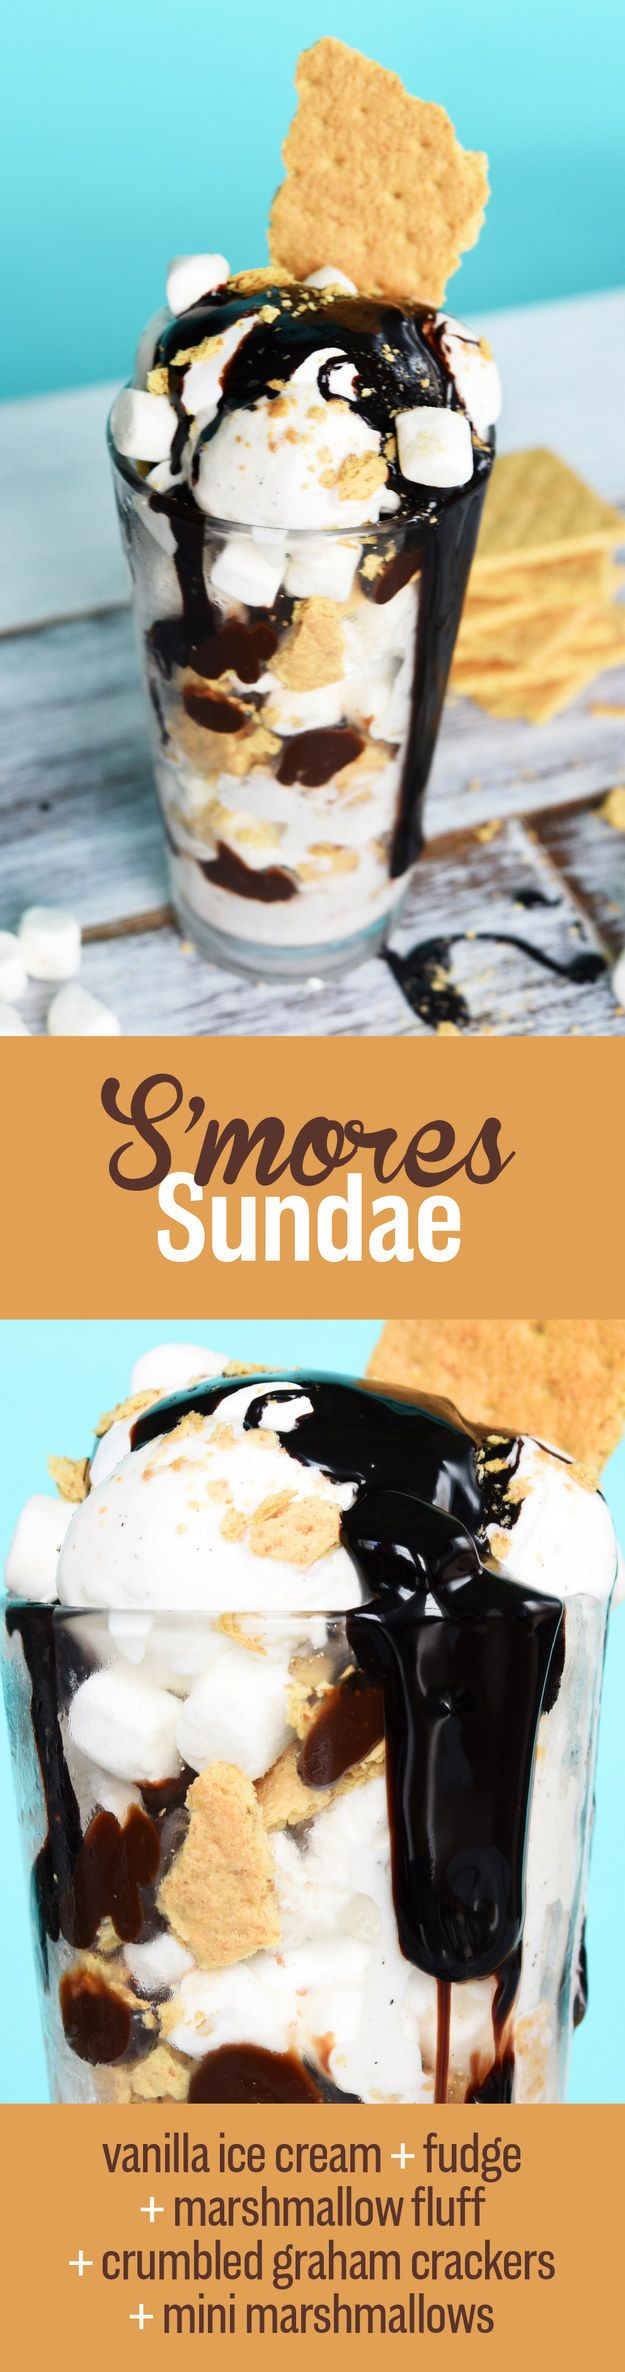 S'mores Sundae | These Ice Cream Sundaes Will Change Your Life